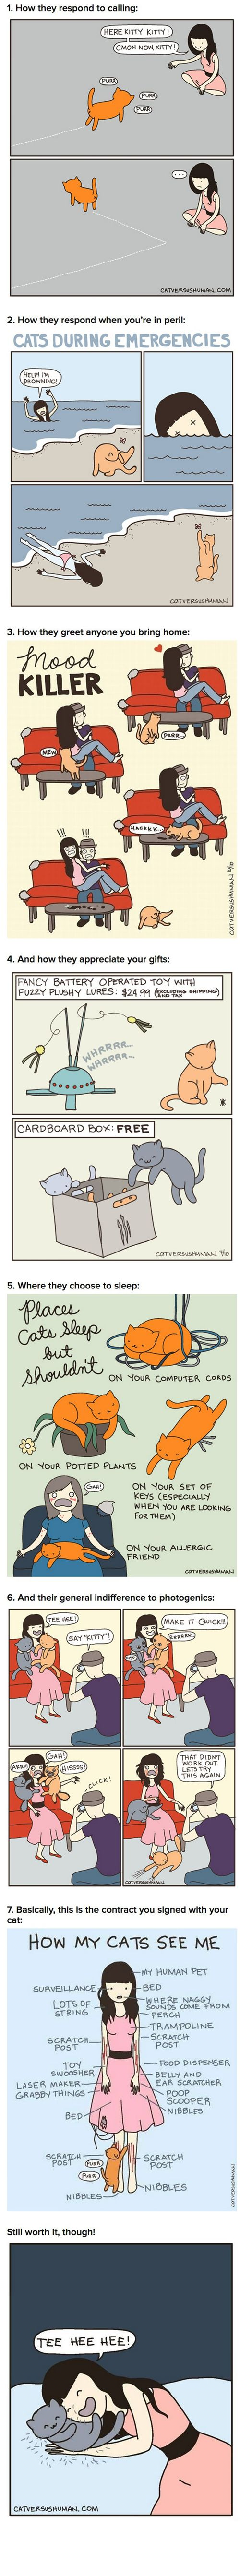 It's like Cat Vs. Human: The King-Sized Version! Drink in the cat toons! (Cat Vs. Human)